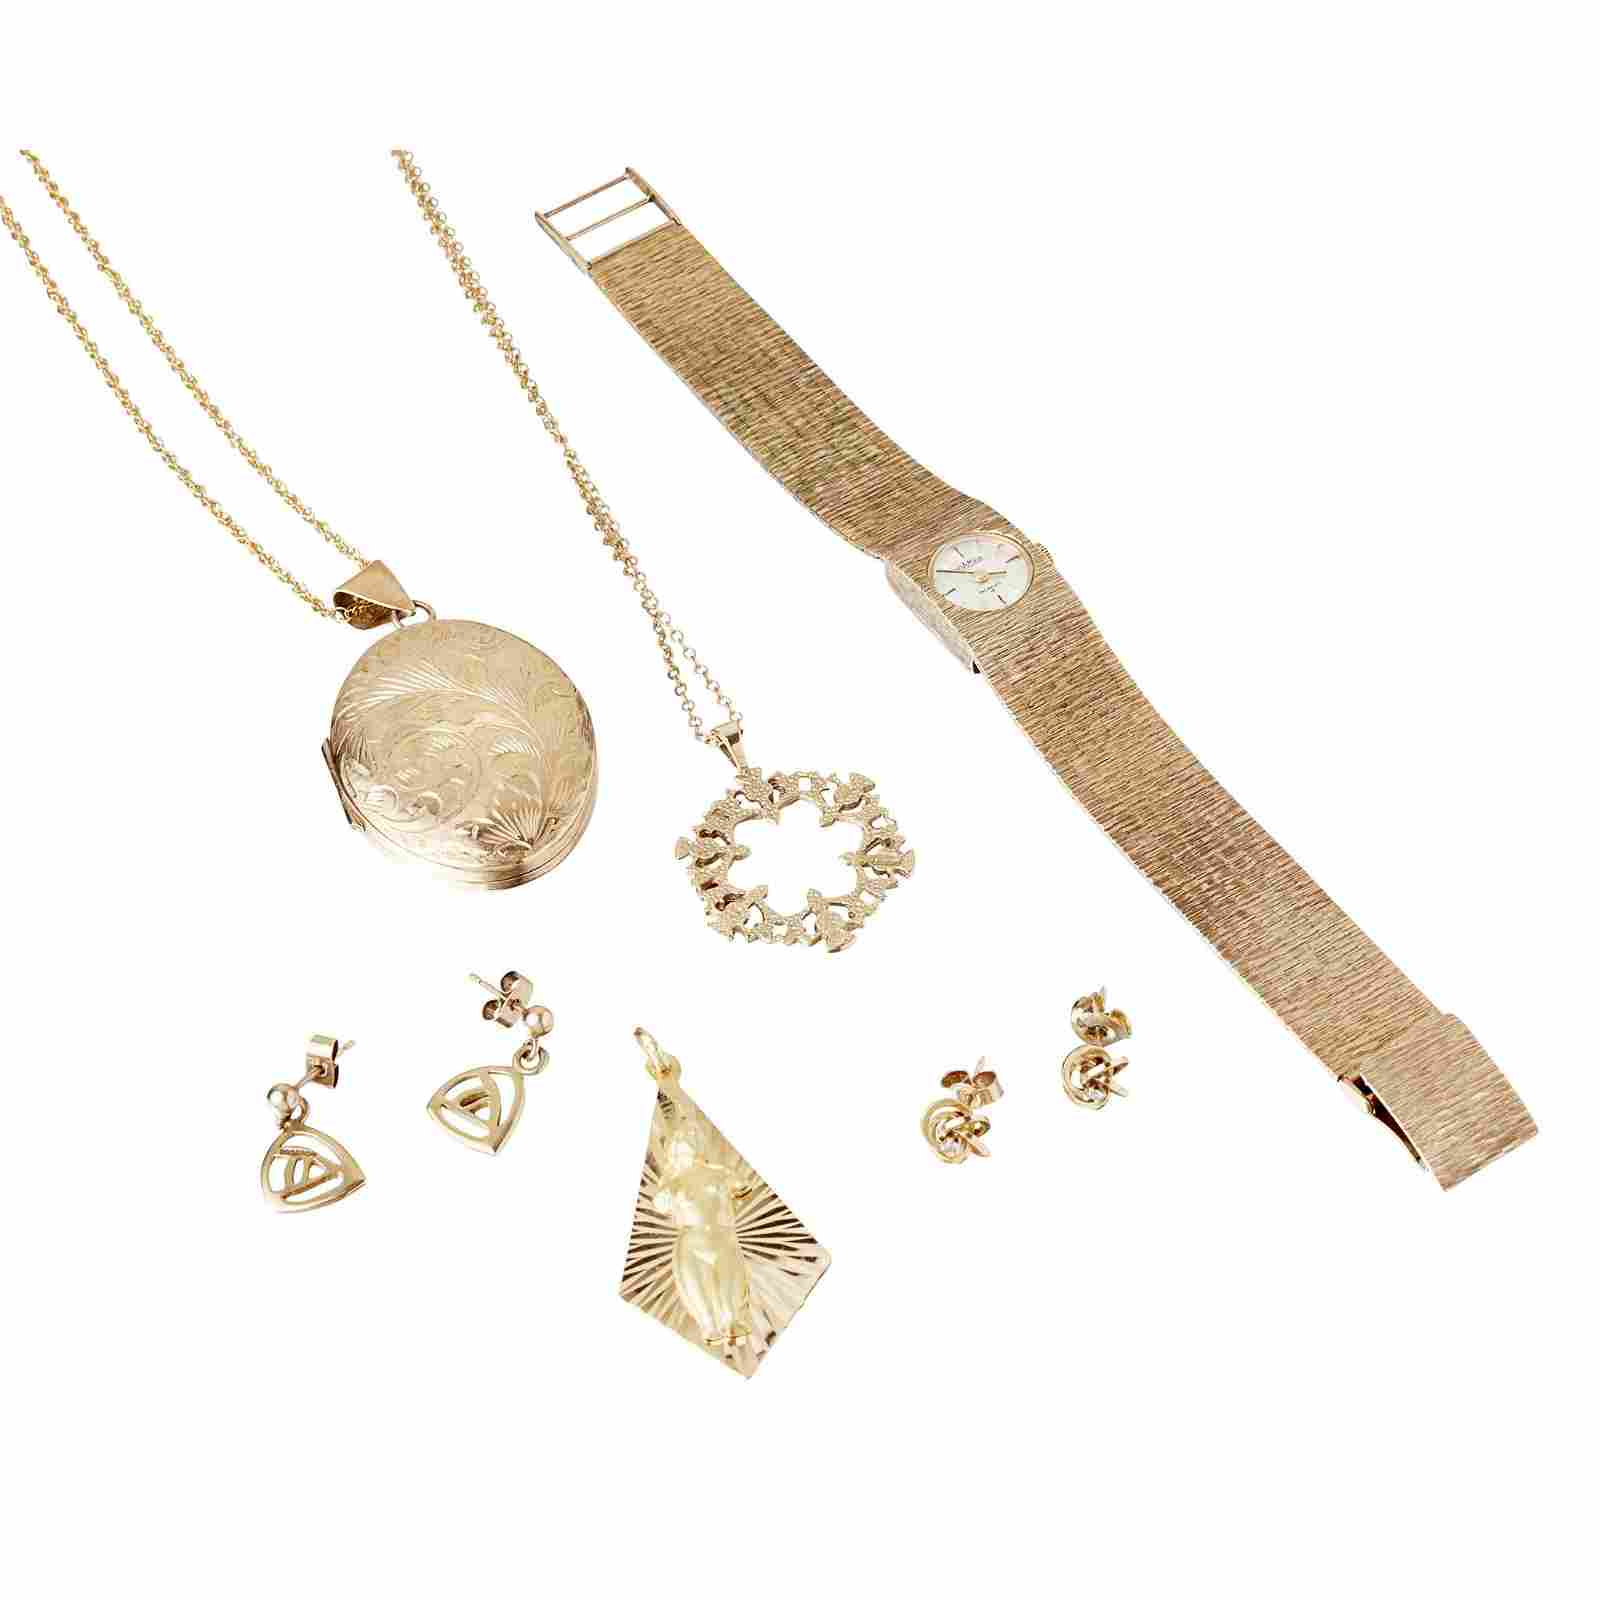 A collection of 9ct gold jewellery